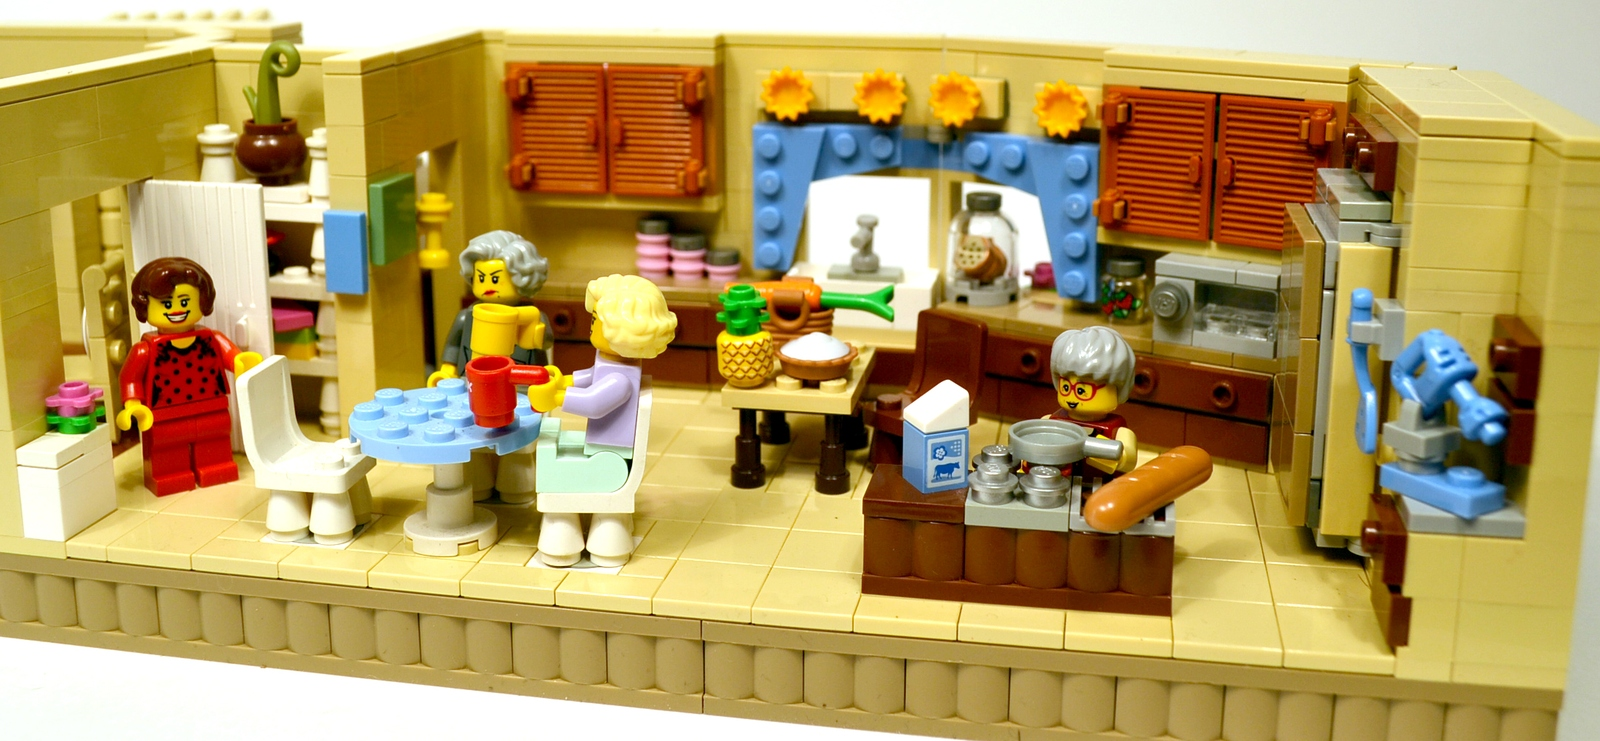 how to make a simple lego sofa circle furniture sleeper ideas product the golden girls living room and kitchen modular set with dorothy rose blanche sophia stan